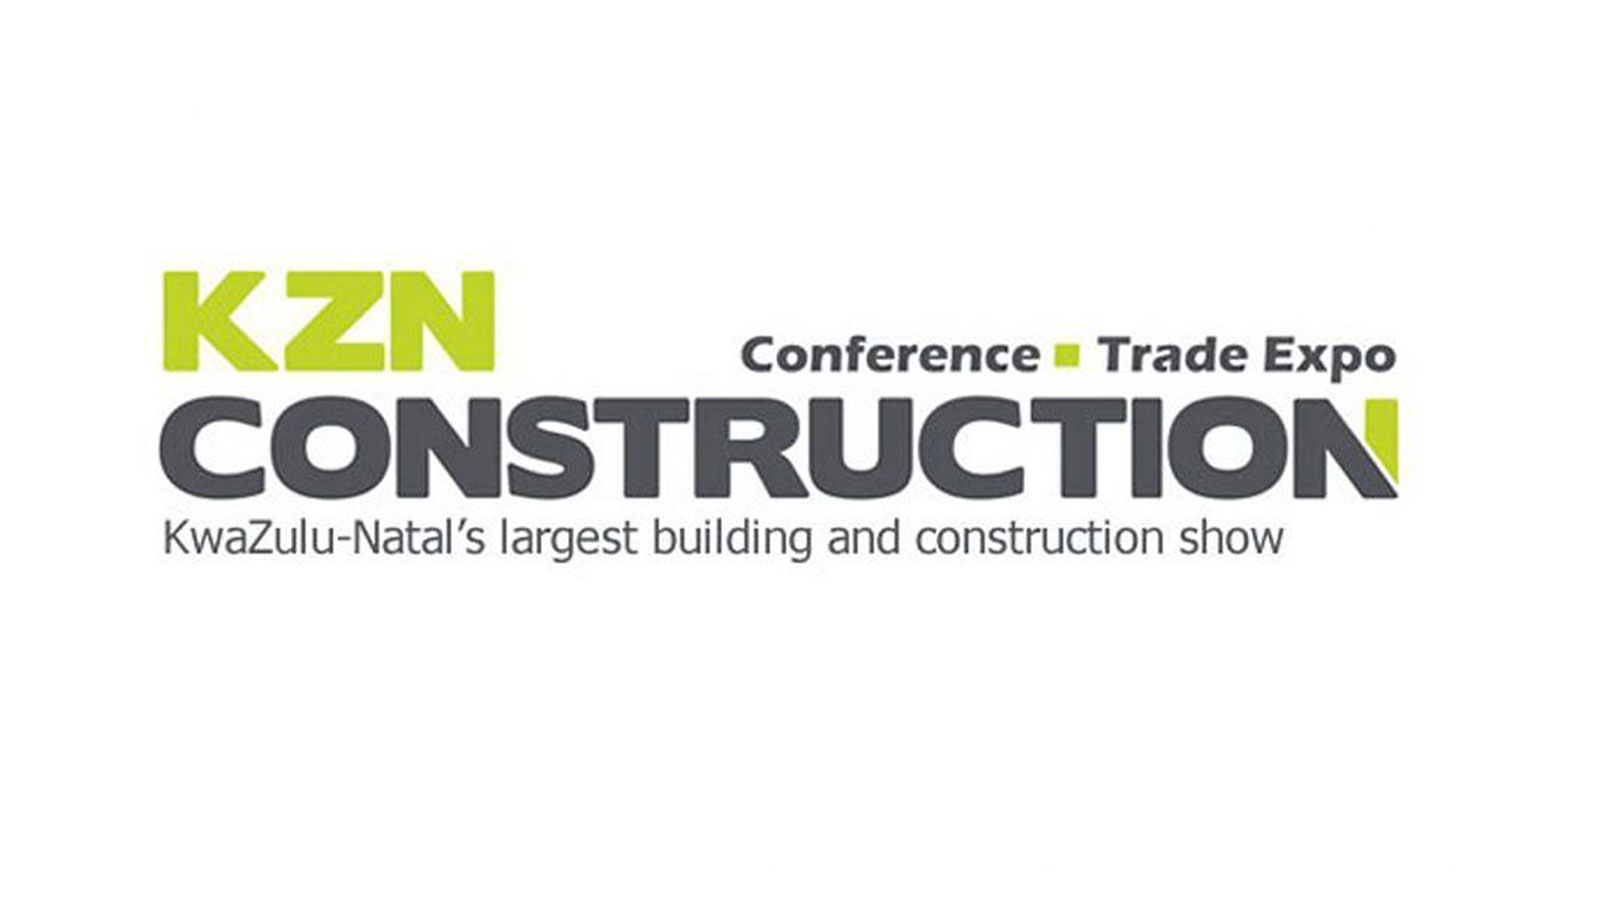 Asite to exhibit at the KZN Construction Expo in Durban